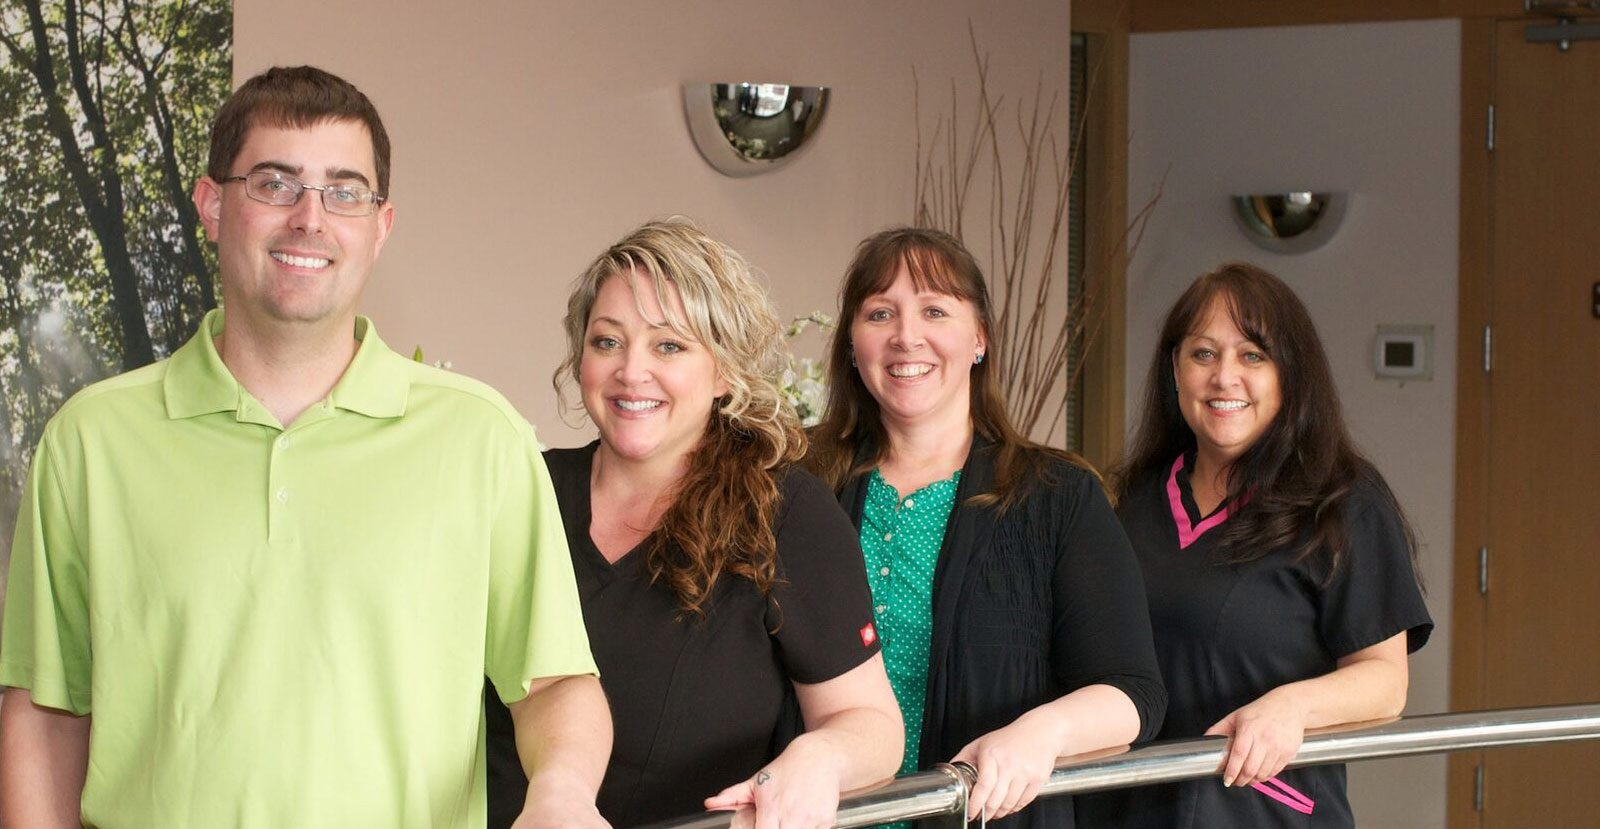 Family dentist in Beavton